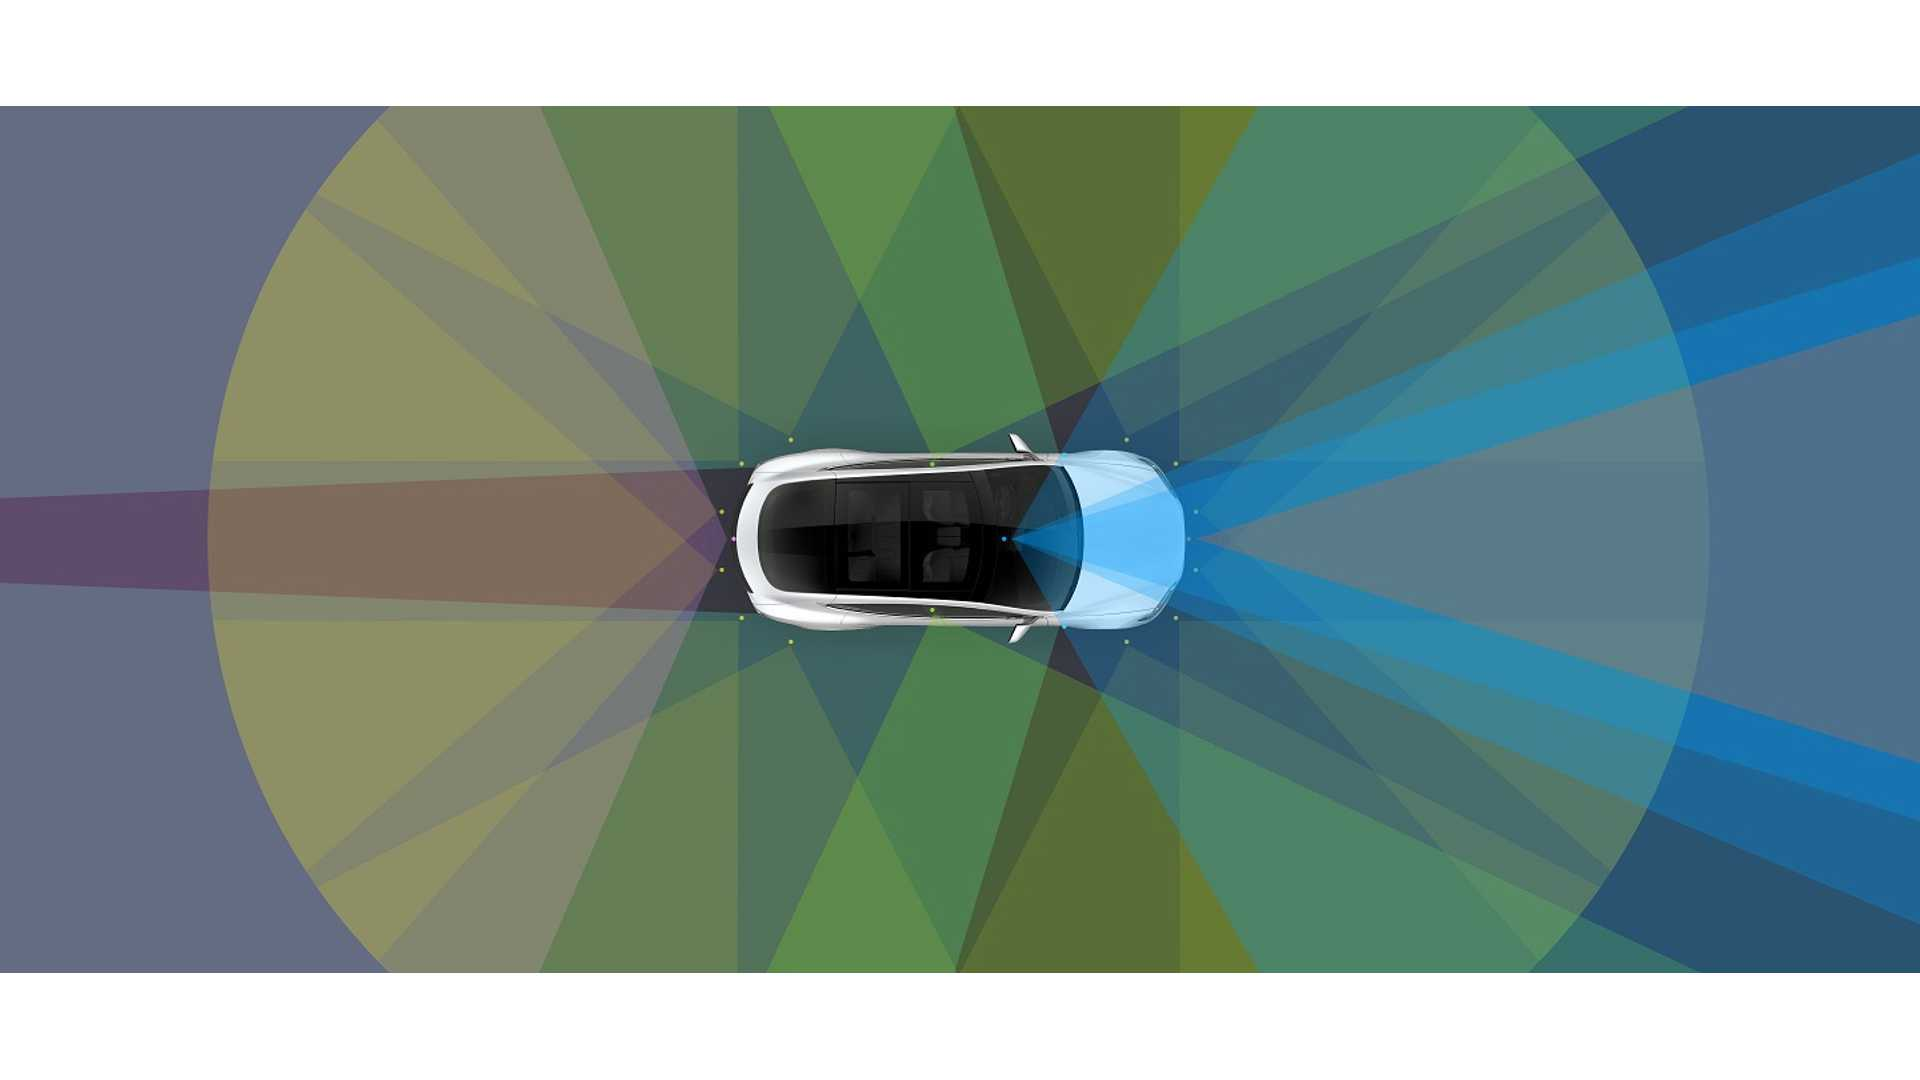 Elon Musk Says Self-Driving Tesla Cars Are Worth Up To $200,000